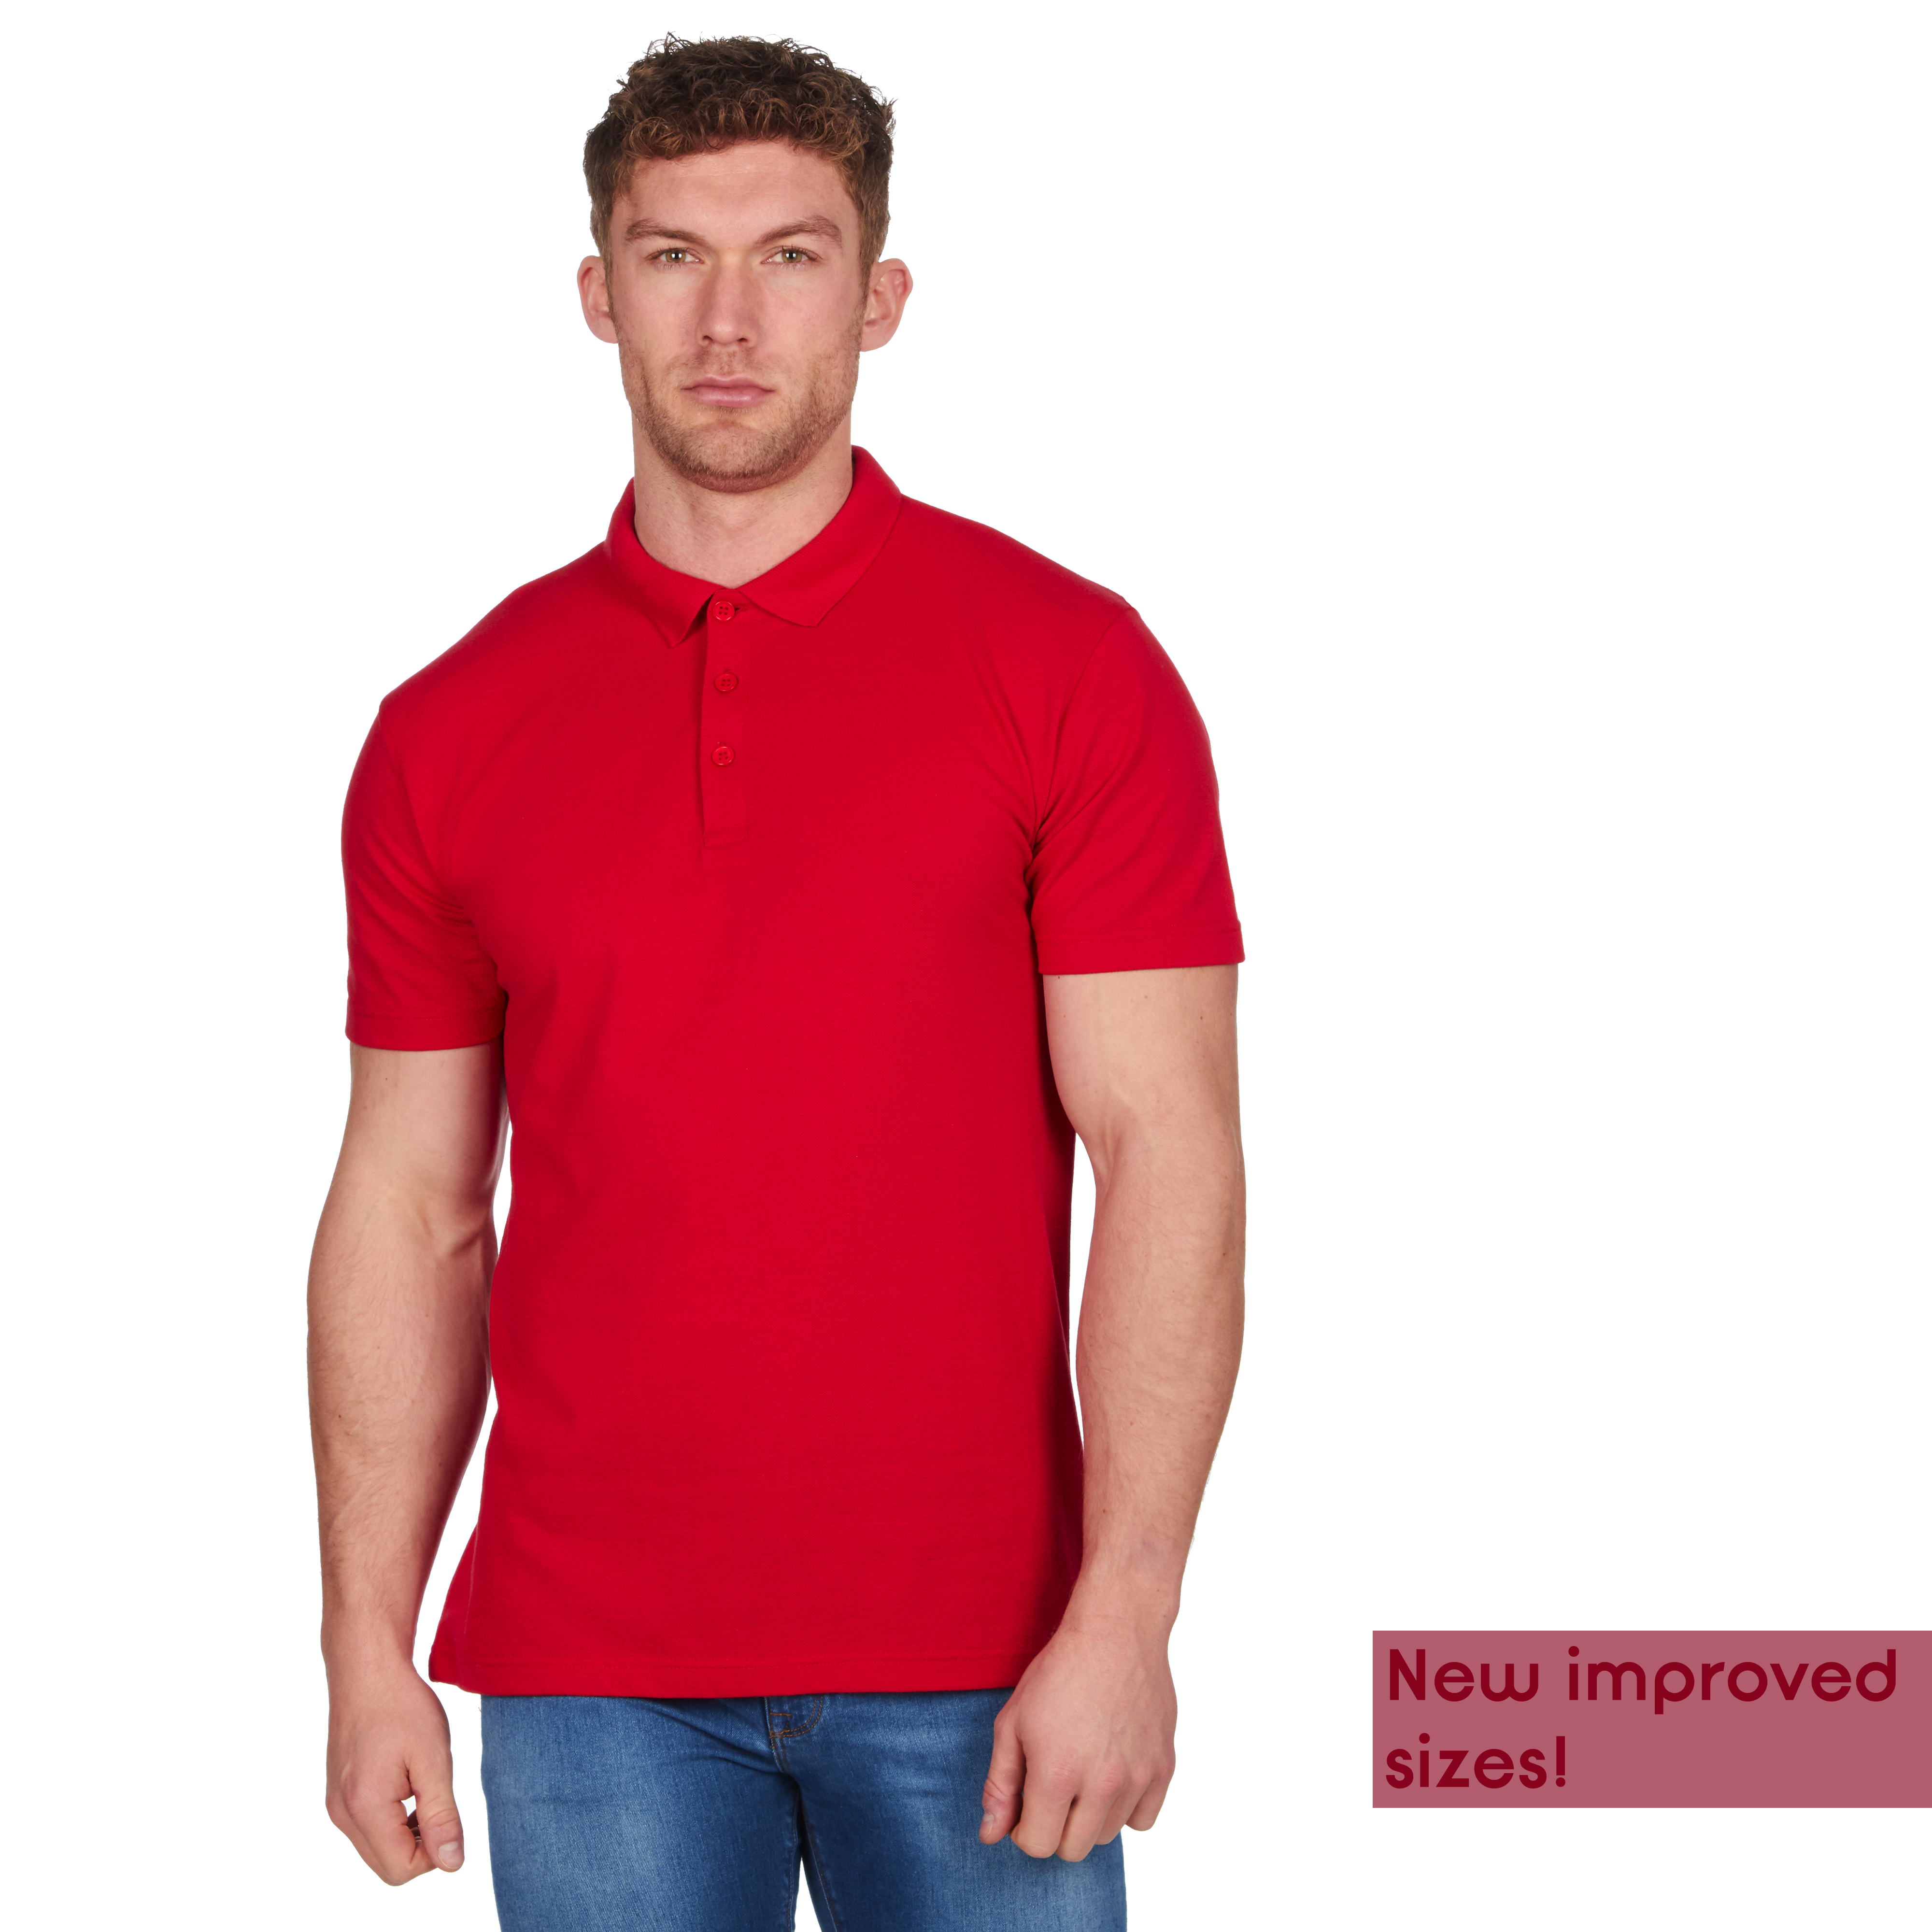 Mens-Classic-Polo-Top-Plus-Size-T-Shirt-Plain-Shirt-Big-And-Tall-Short-Sleeve thumbnail 29